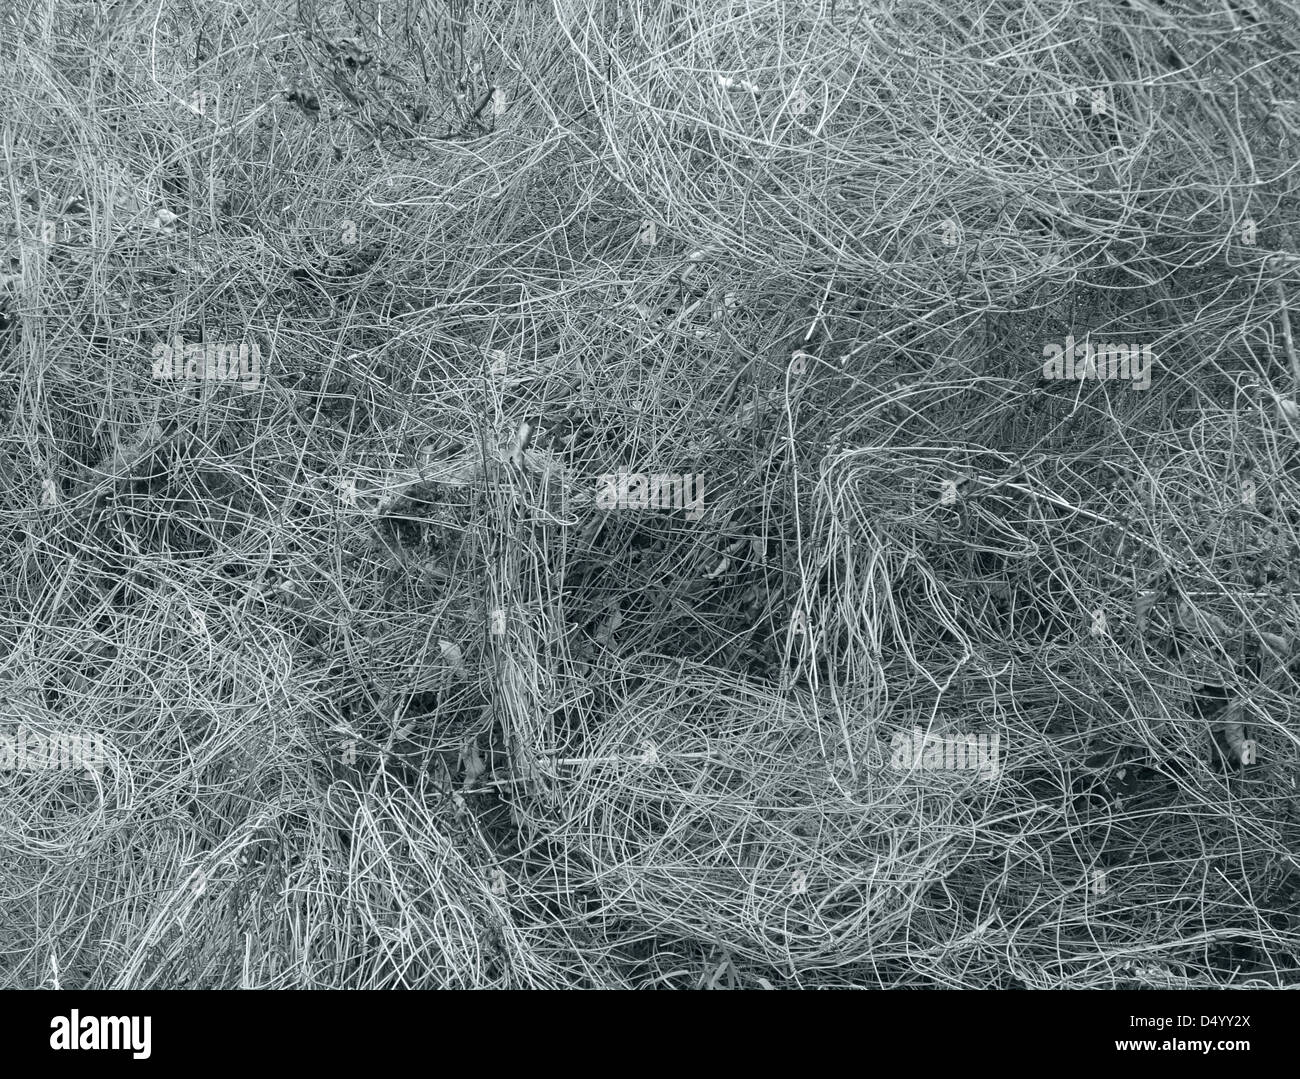 full frame abstract background showing a metallic wire entanglement - Stock Image